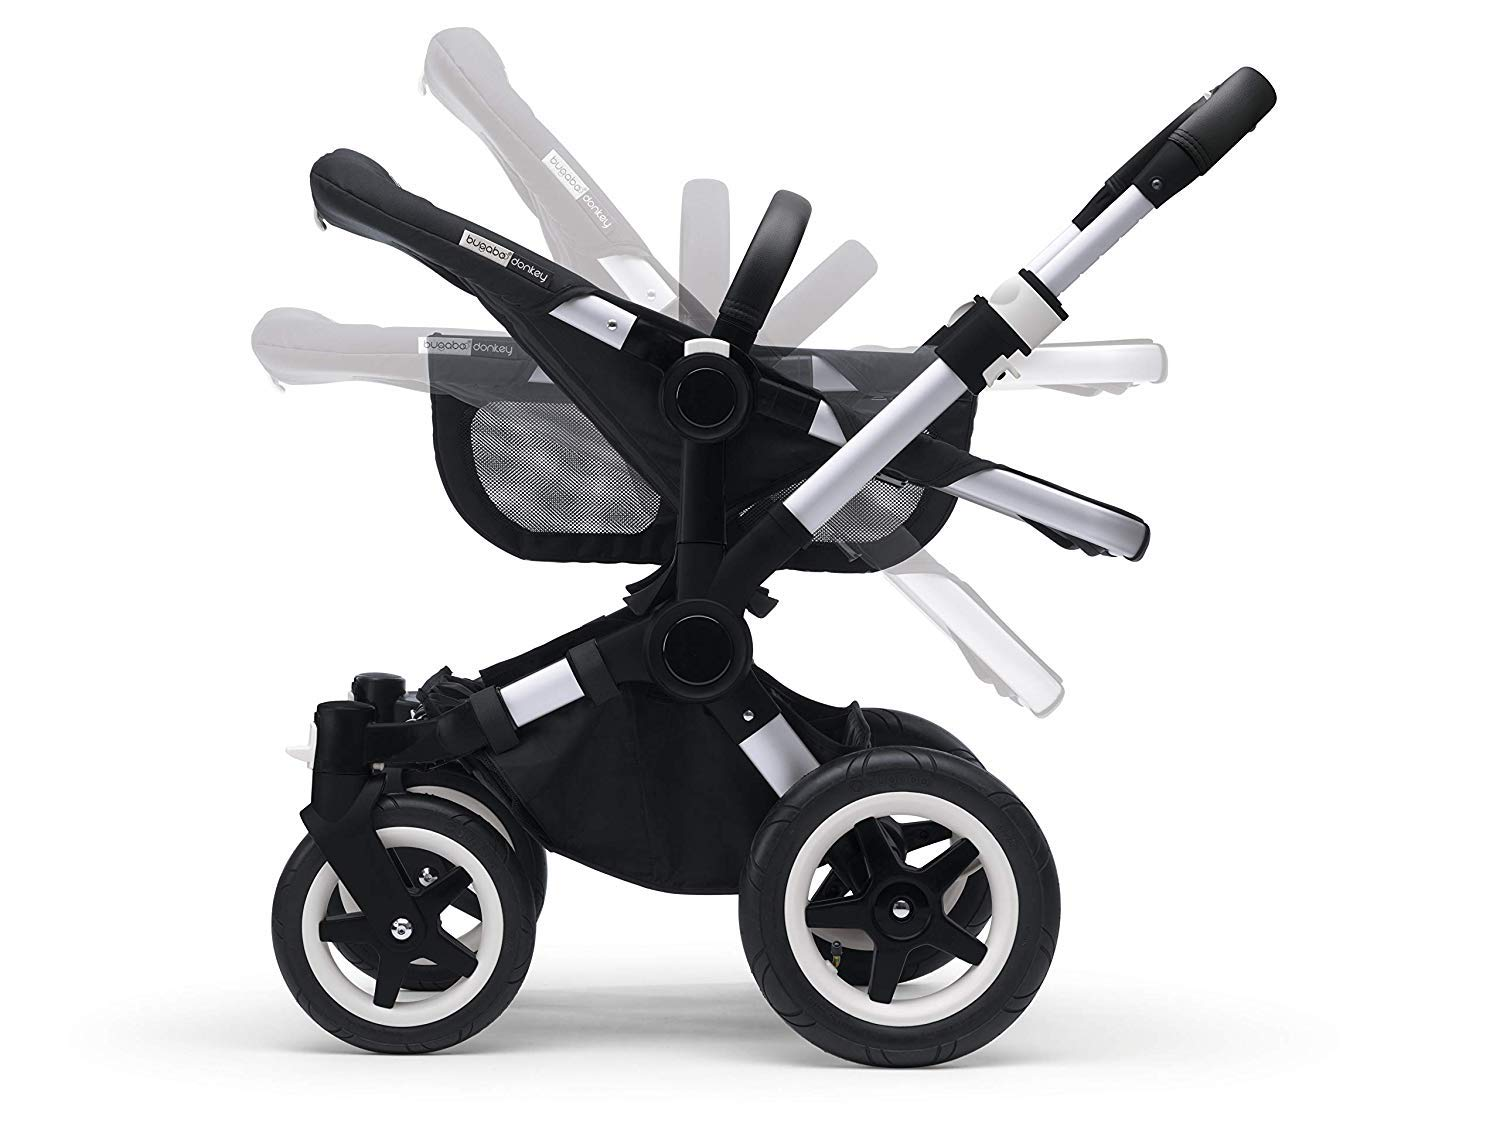 Bugaboo Donkey 2 Twin, 2 in 1 Double Pram and Double Pushchair for Twins, Steel Blue Bugaboo The name donkey says it all: it's the bugaboo pushchair with the most storage space. Compatible with the bugaboo donkey & donkey2 5